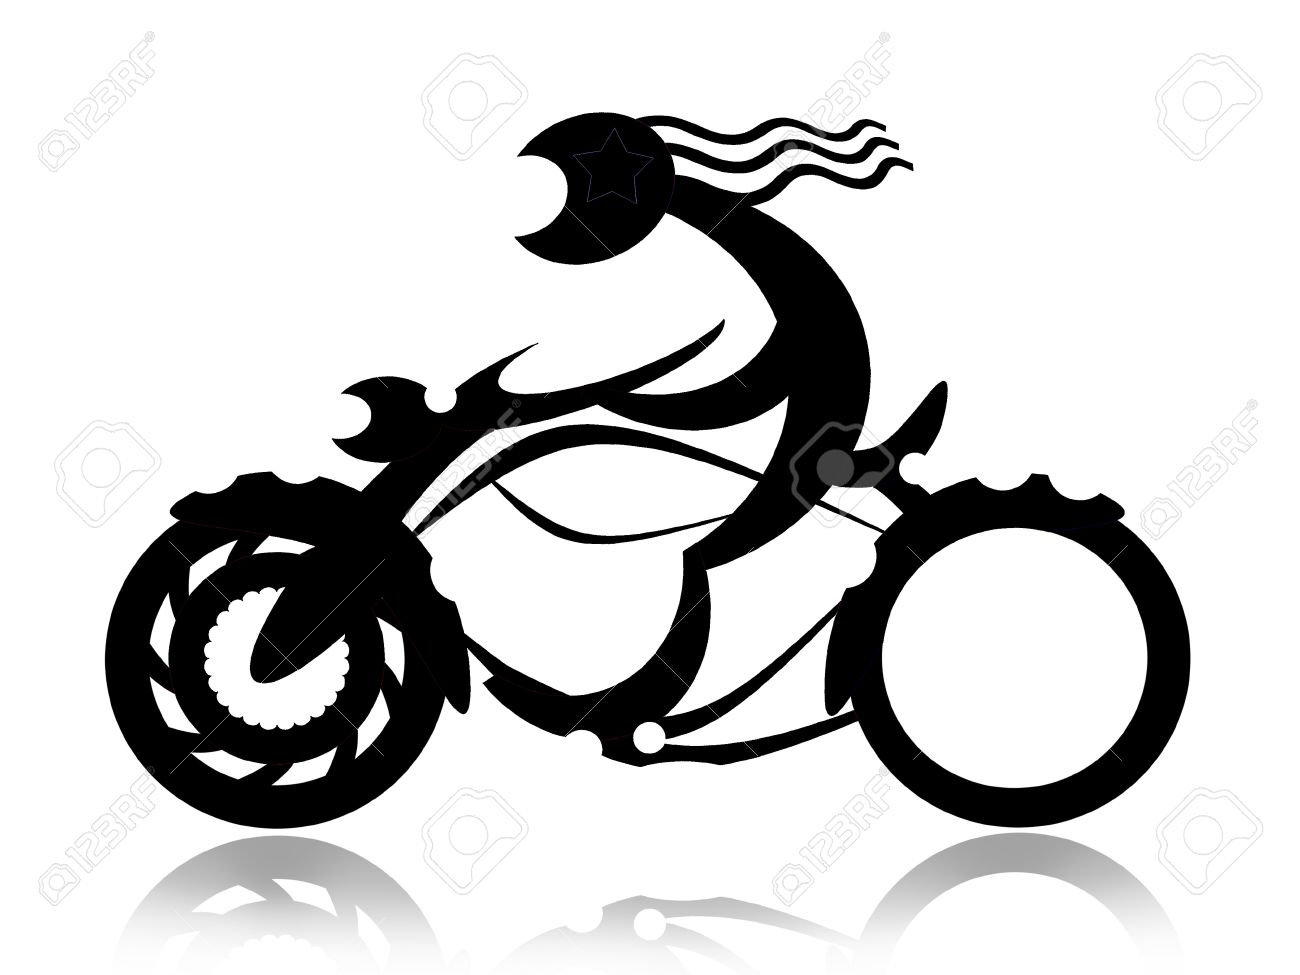 Biker on motorcycle black silhouette isolated on white background Stock Photo - 13420018